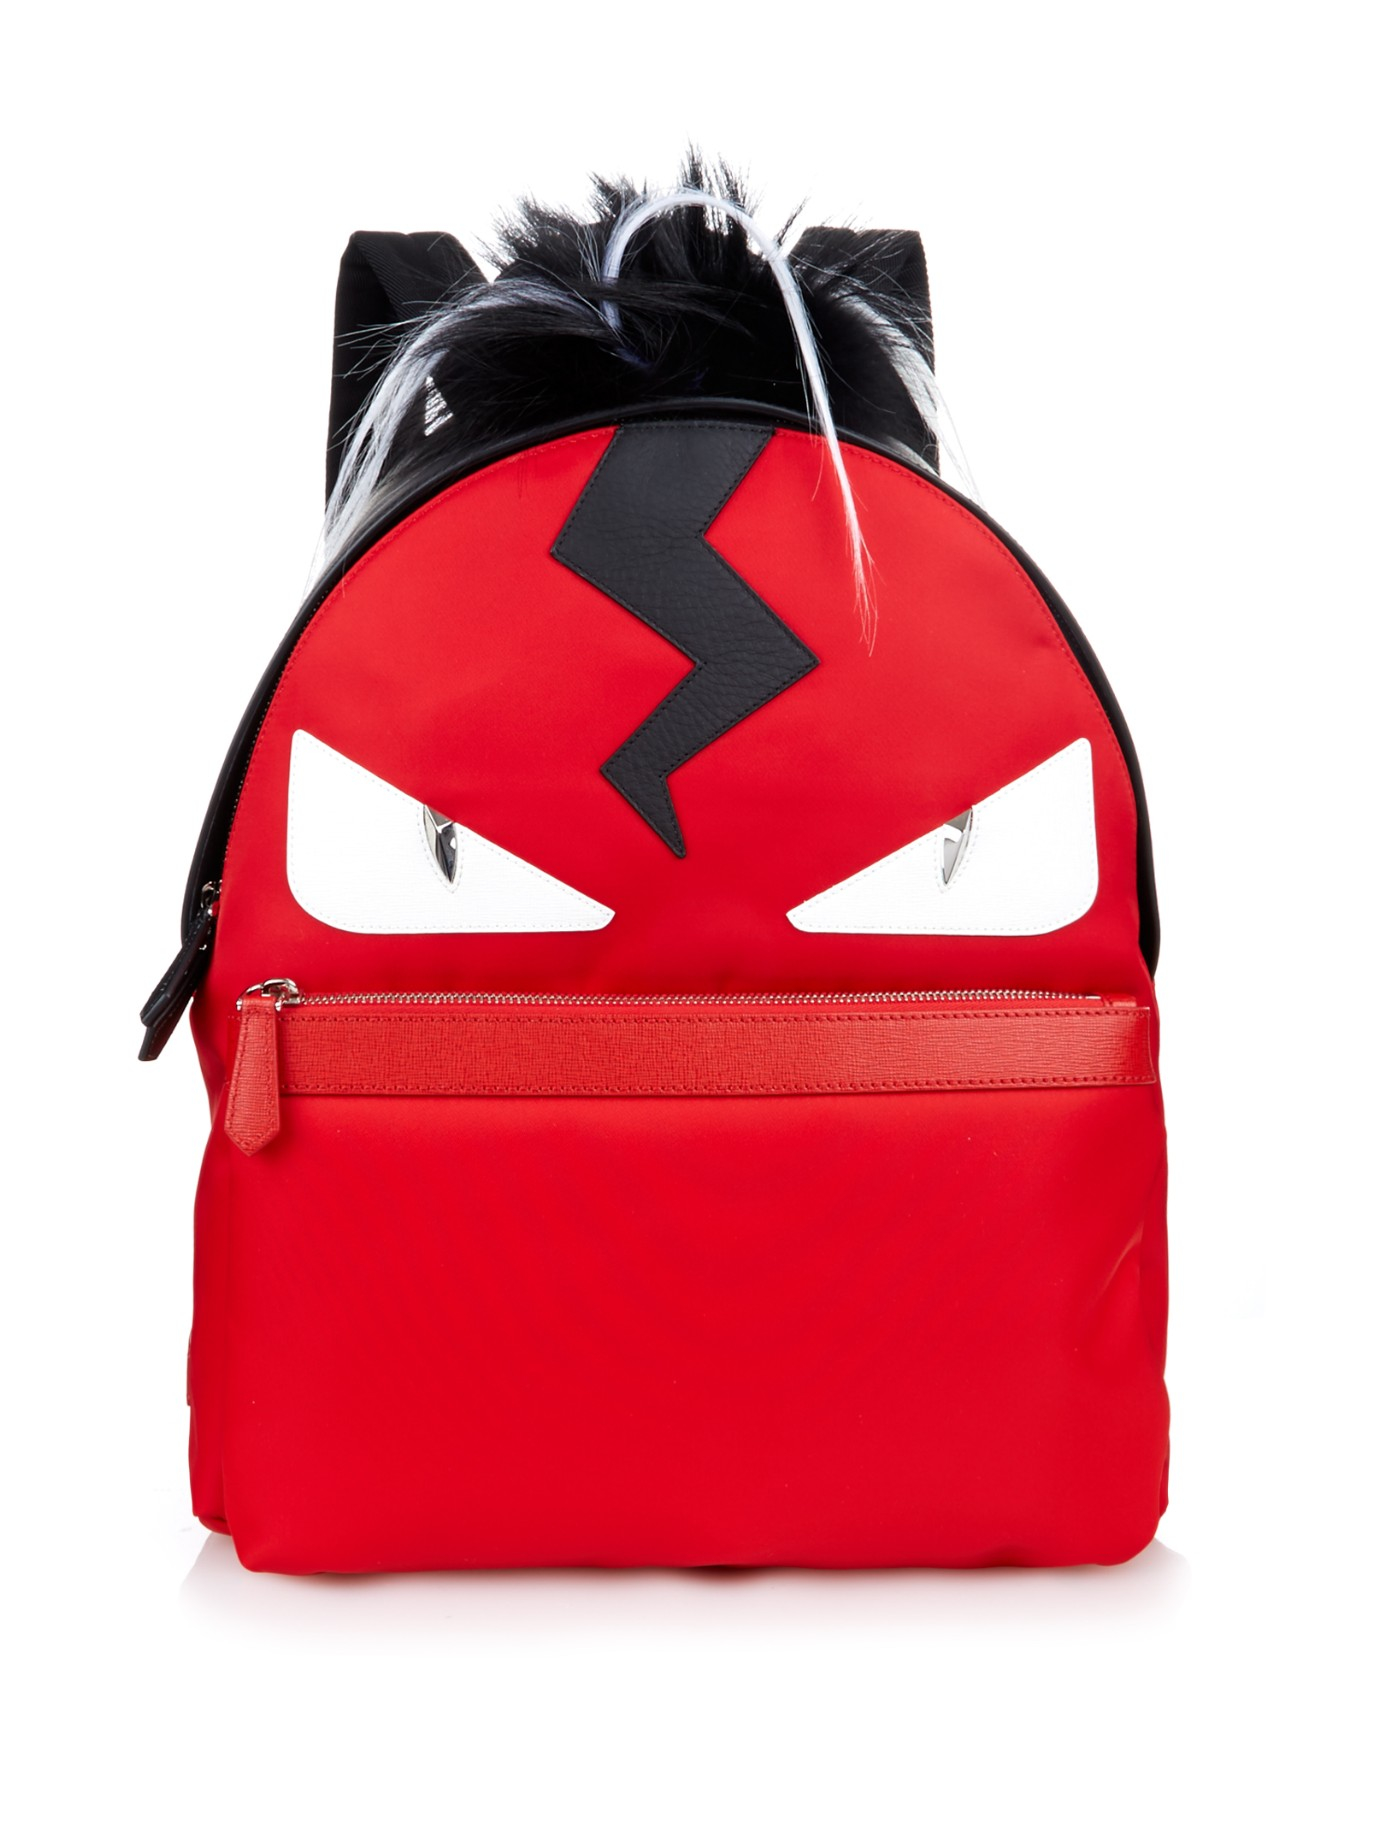 f1dc63af7322 Lyst - Fendi Bag Bugs Leather And Nylon Backpack in Red for Men